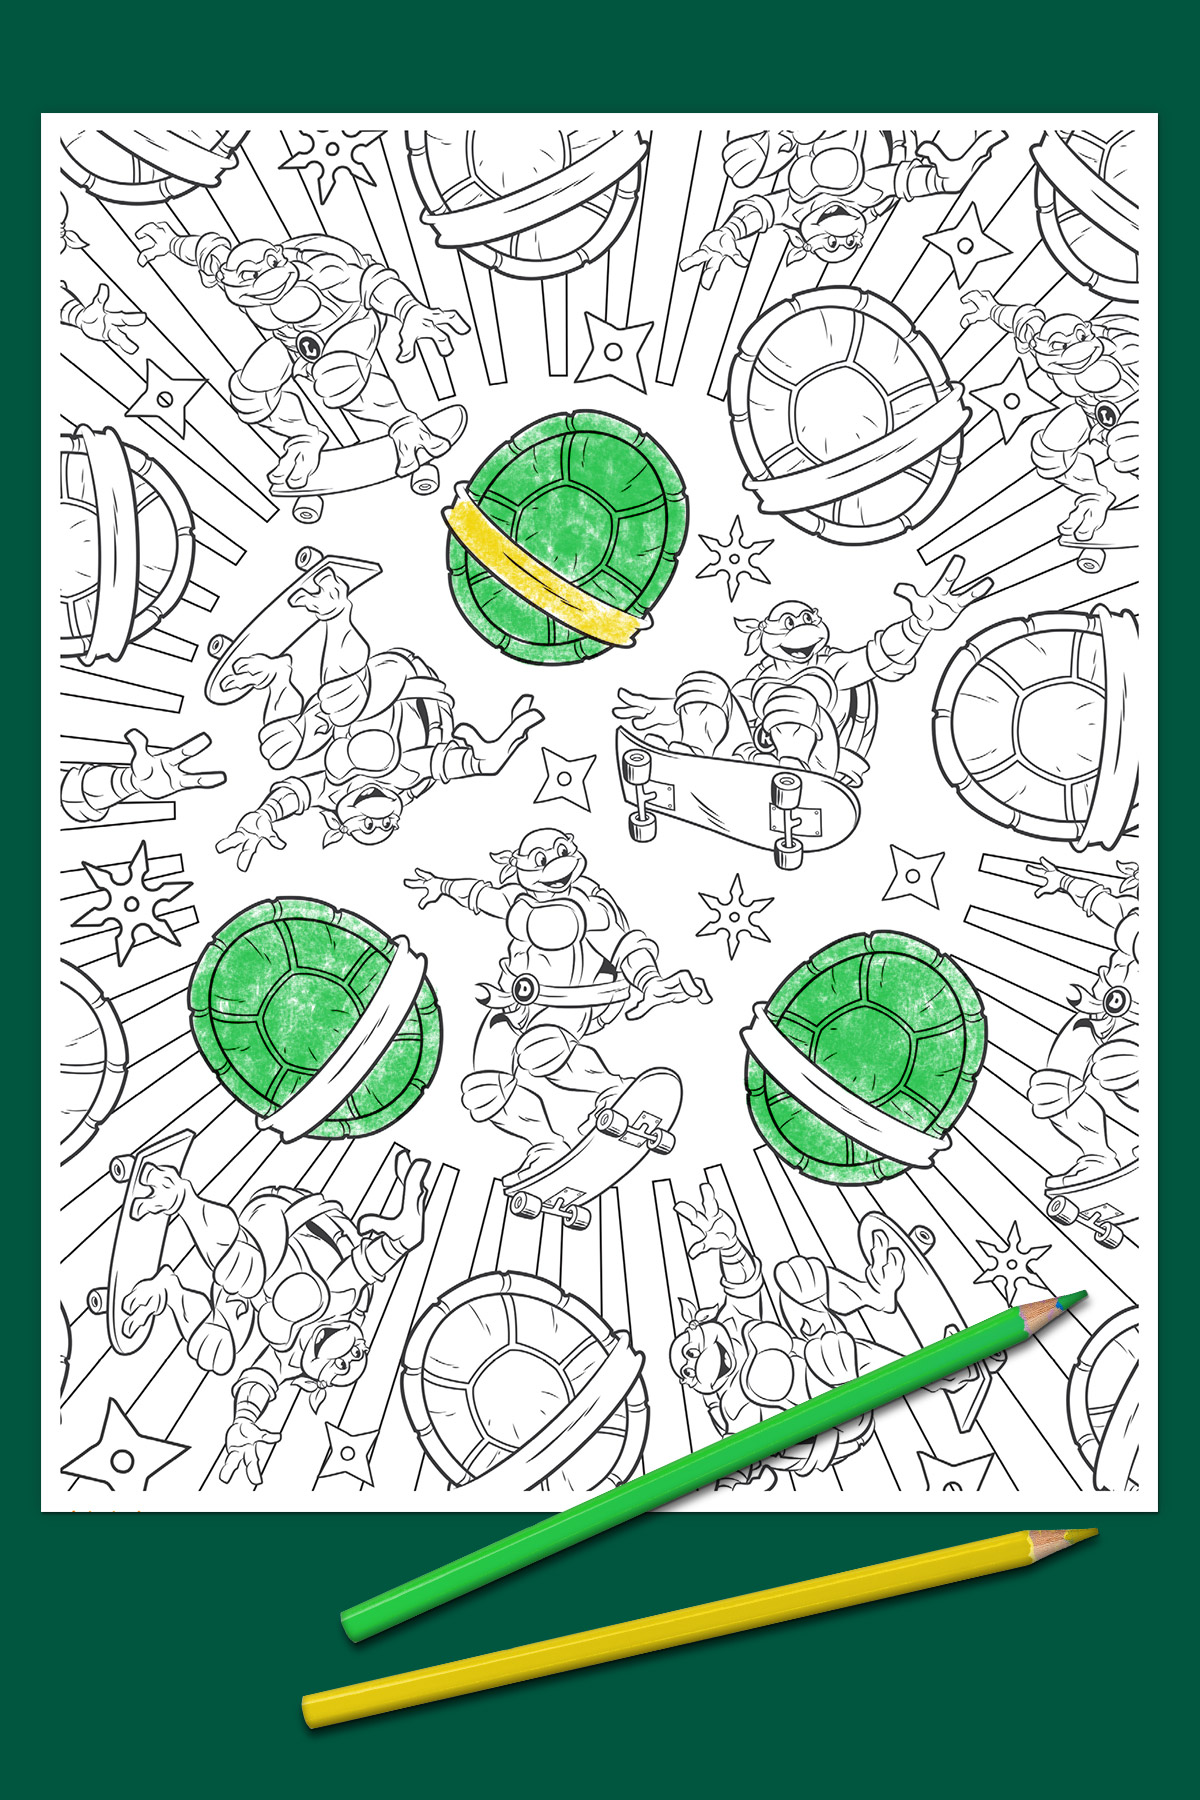 New Adult TMNT Coloring Book From Random House Hits The Market